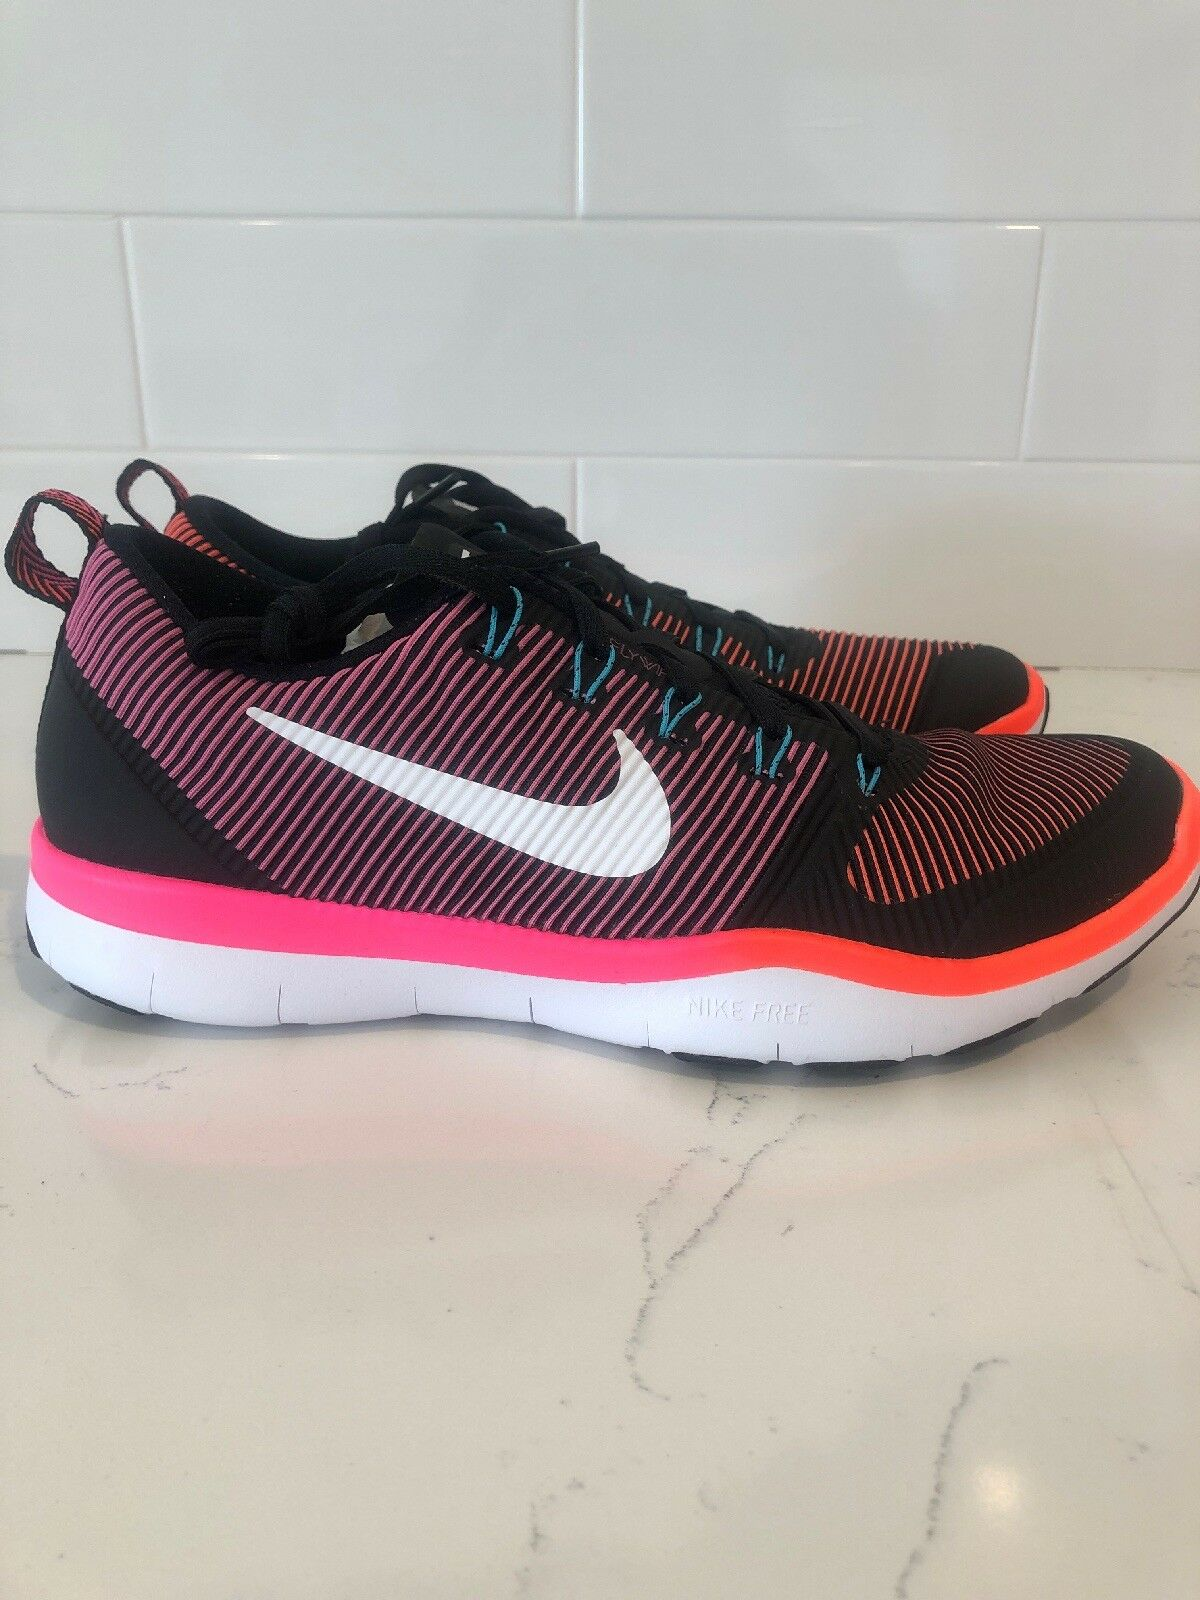 NIKE FREE TRAIN VERSATILITY Men's running shoes NEW MSRP  110 833258 018 BlacK